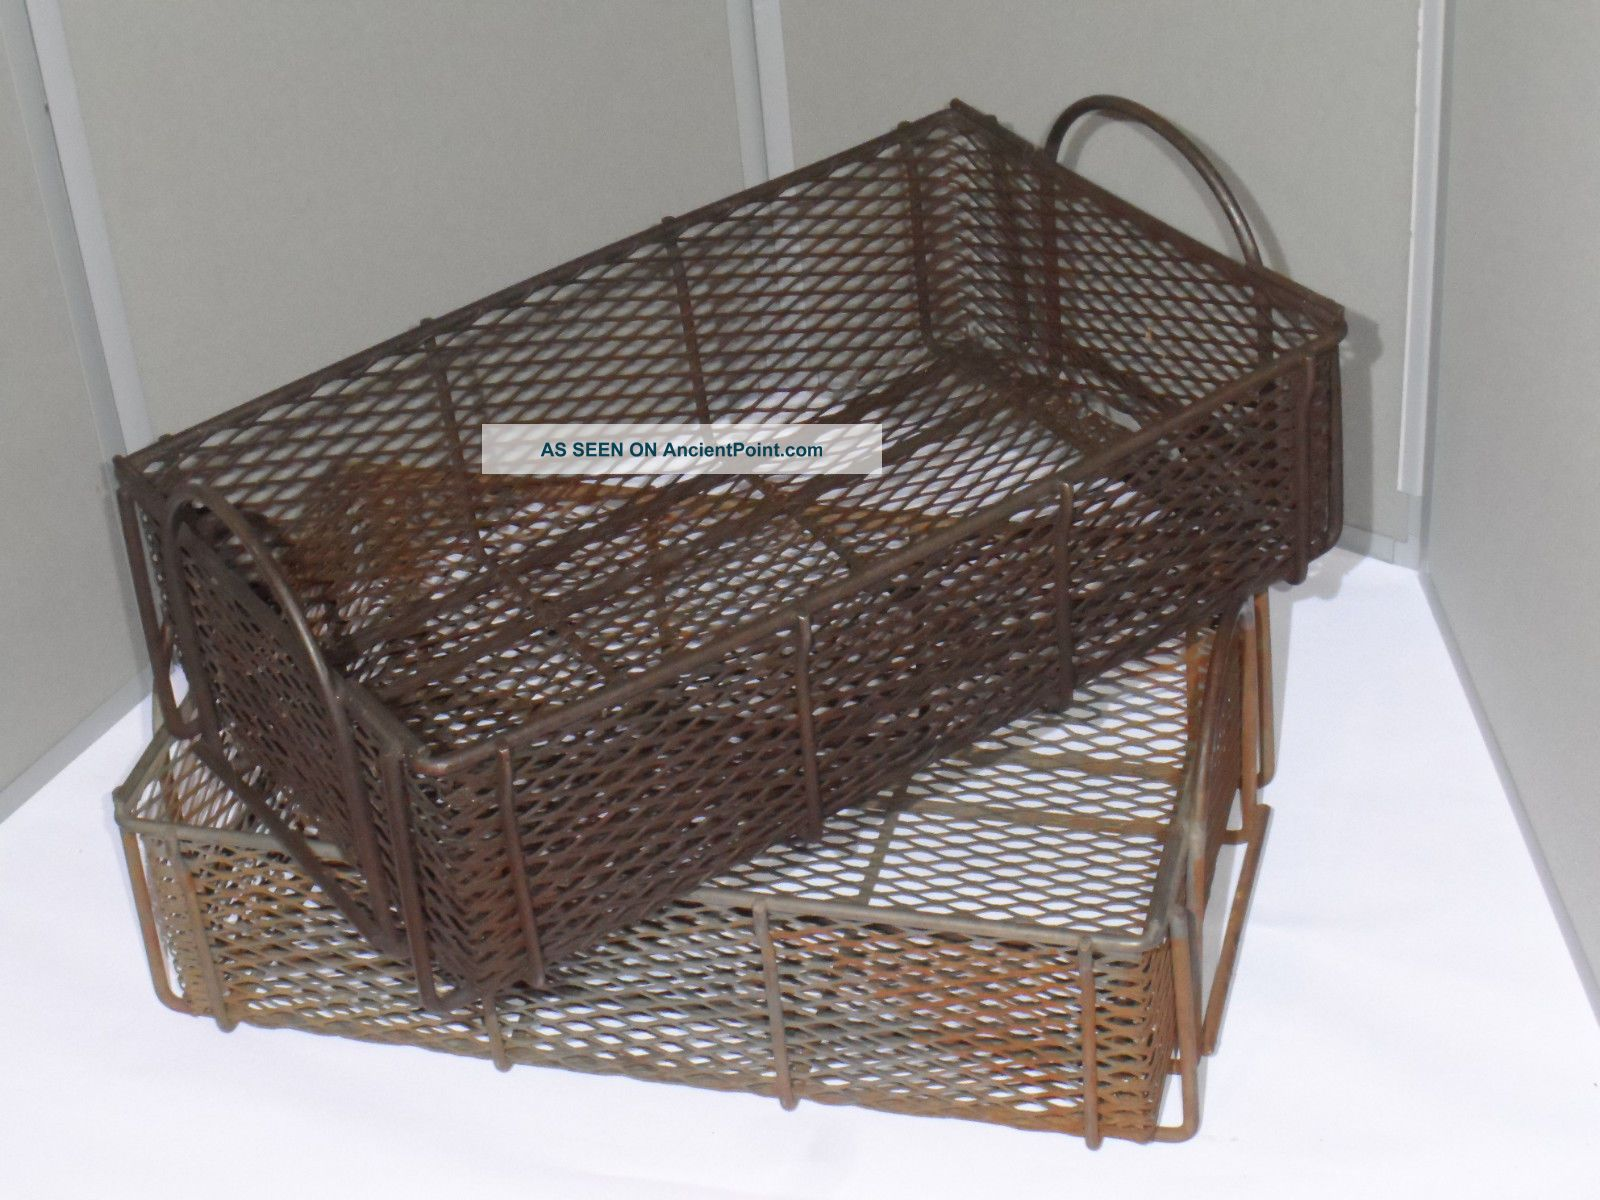 2 Vintage 1950s Heavy Duty Steel Wire Industrial Baskets/totes Distressed Metal Other photo